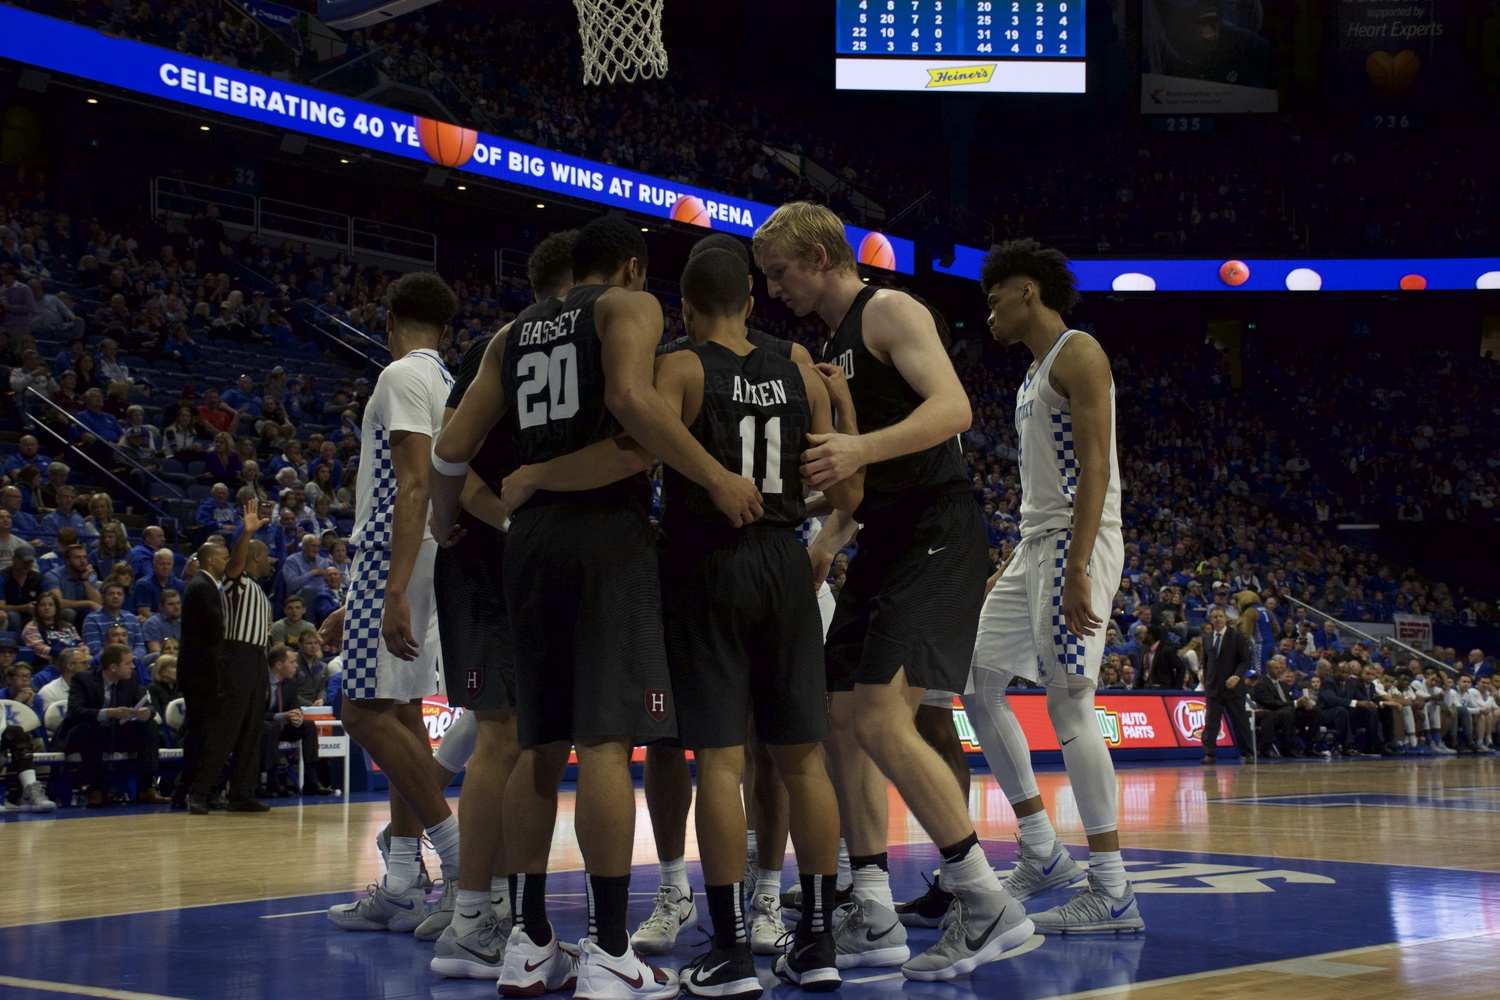 Harvard huddles during a stoppage in play against Kentucky.